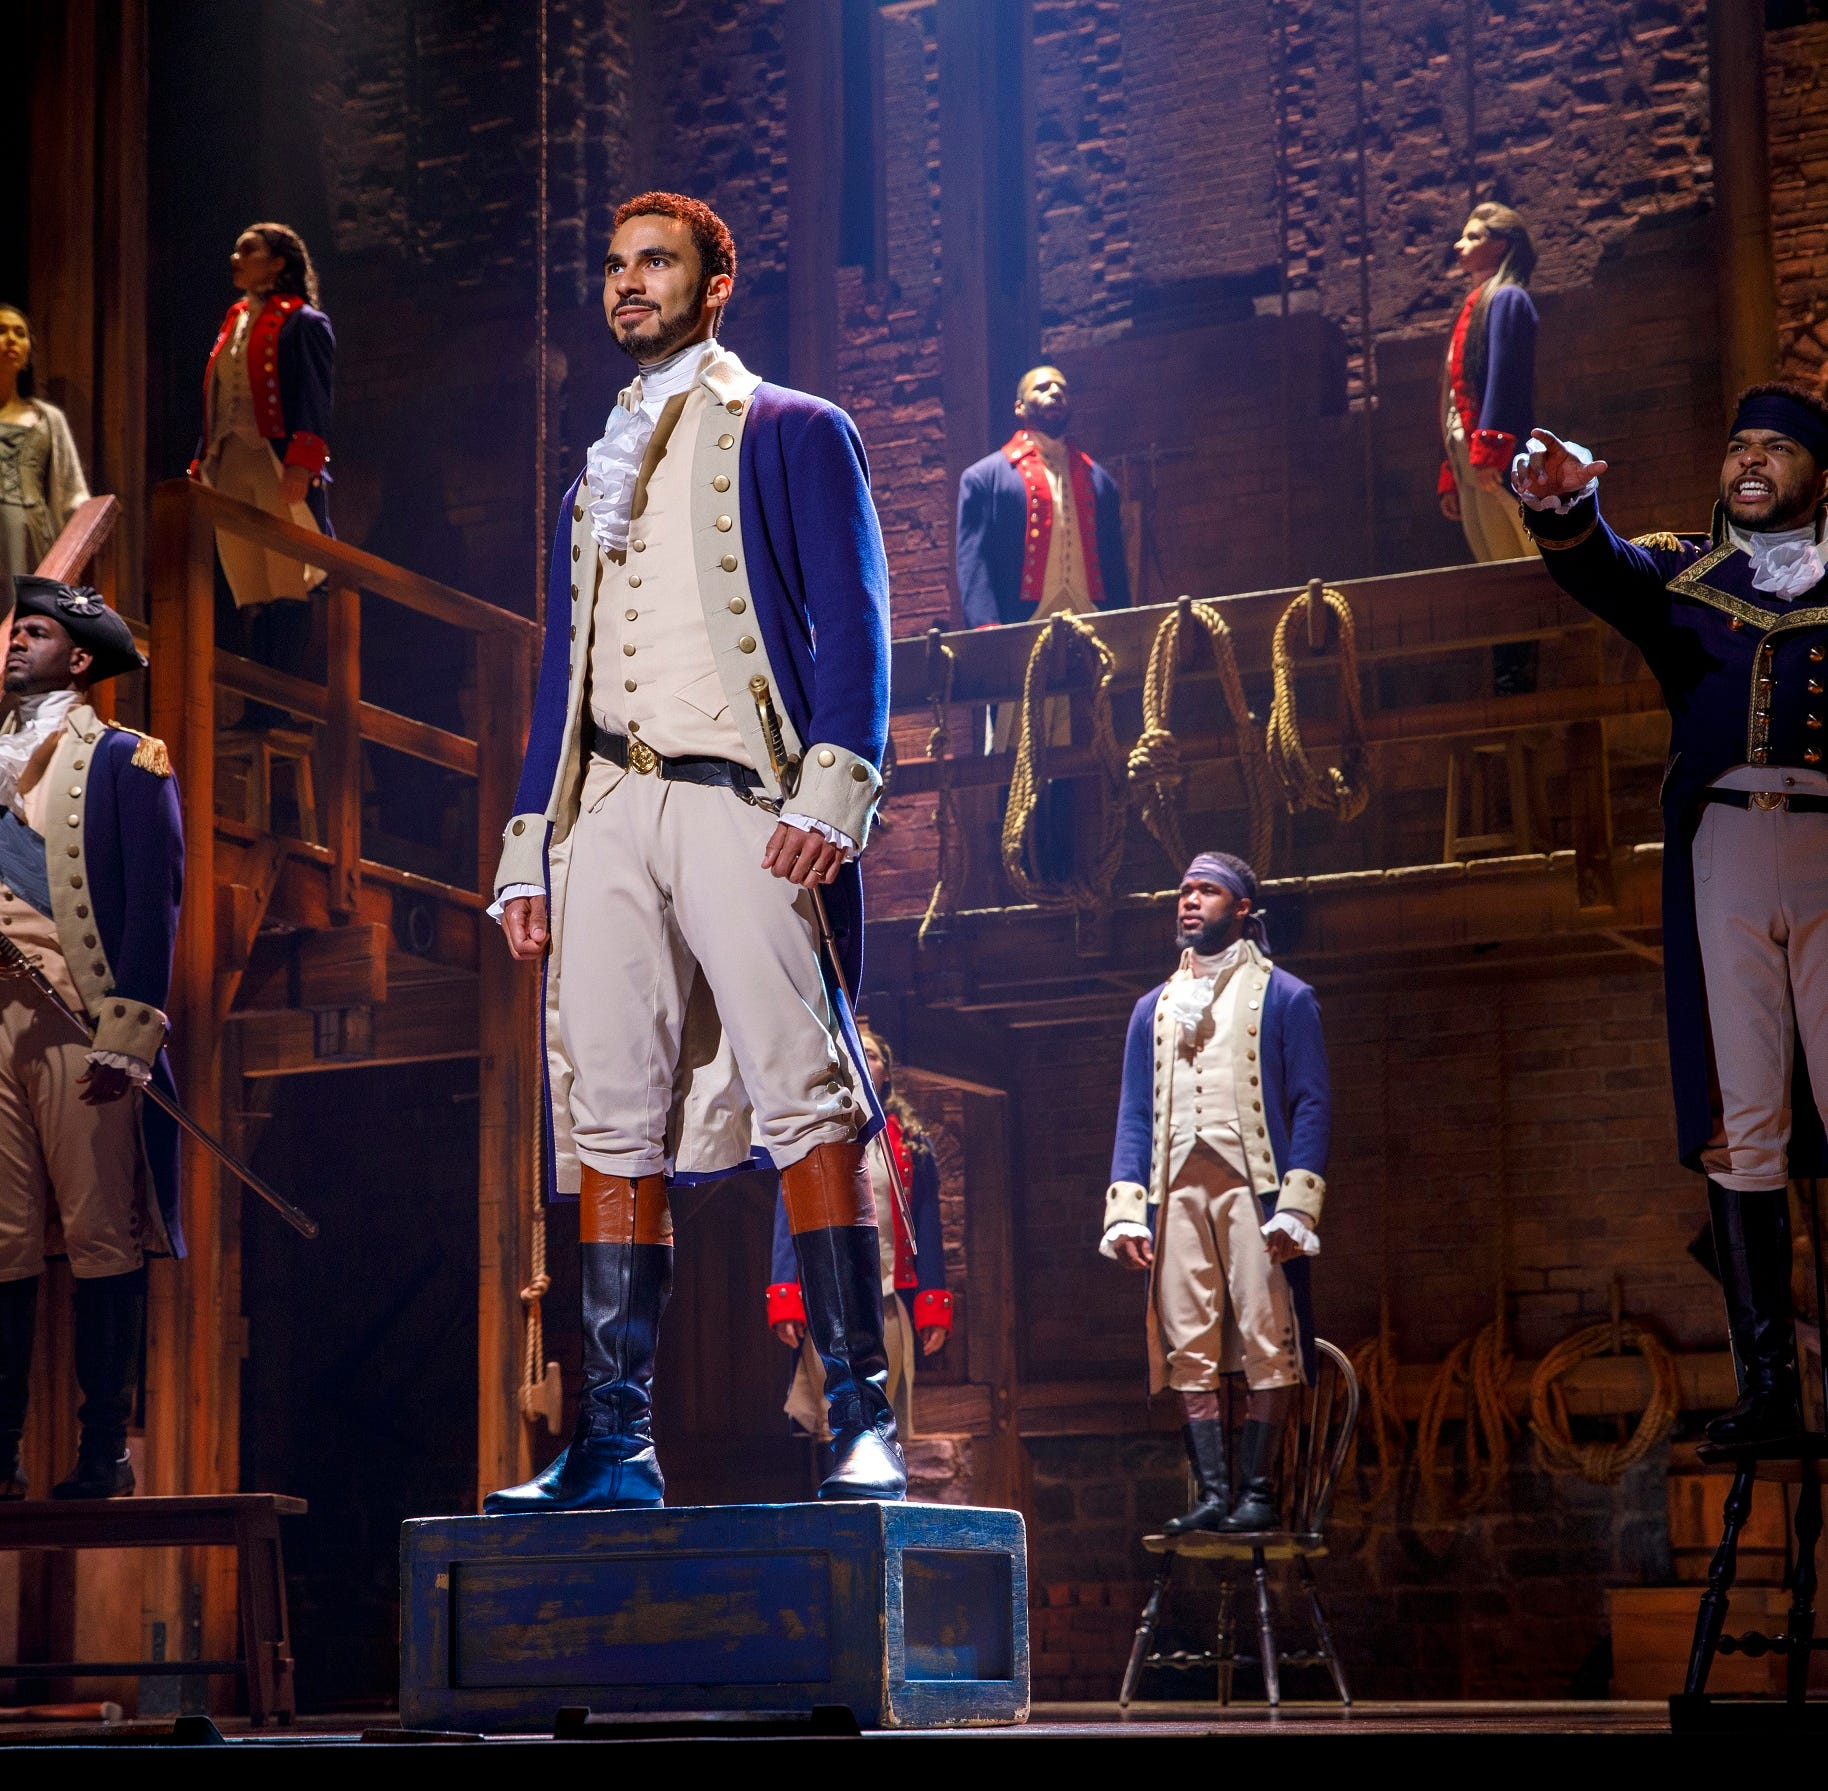 Out of 60,000+ 'Hamilton' seats, how many were left unsold?